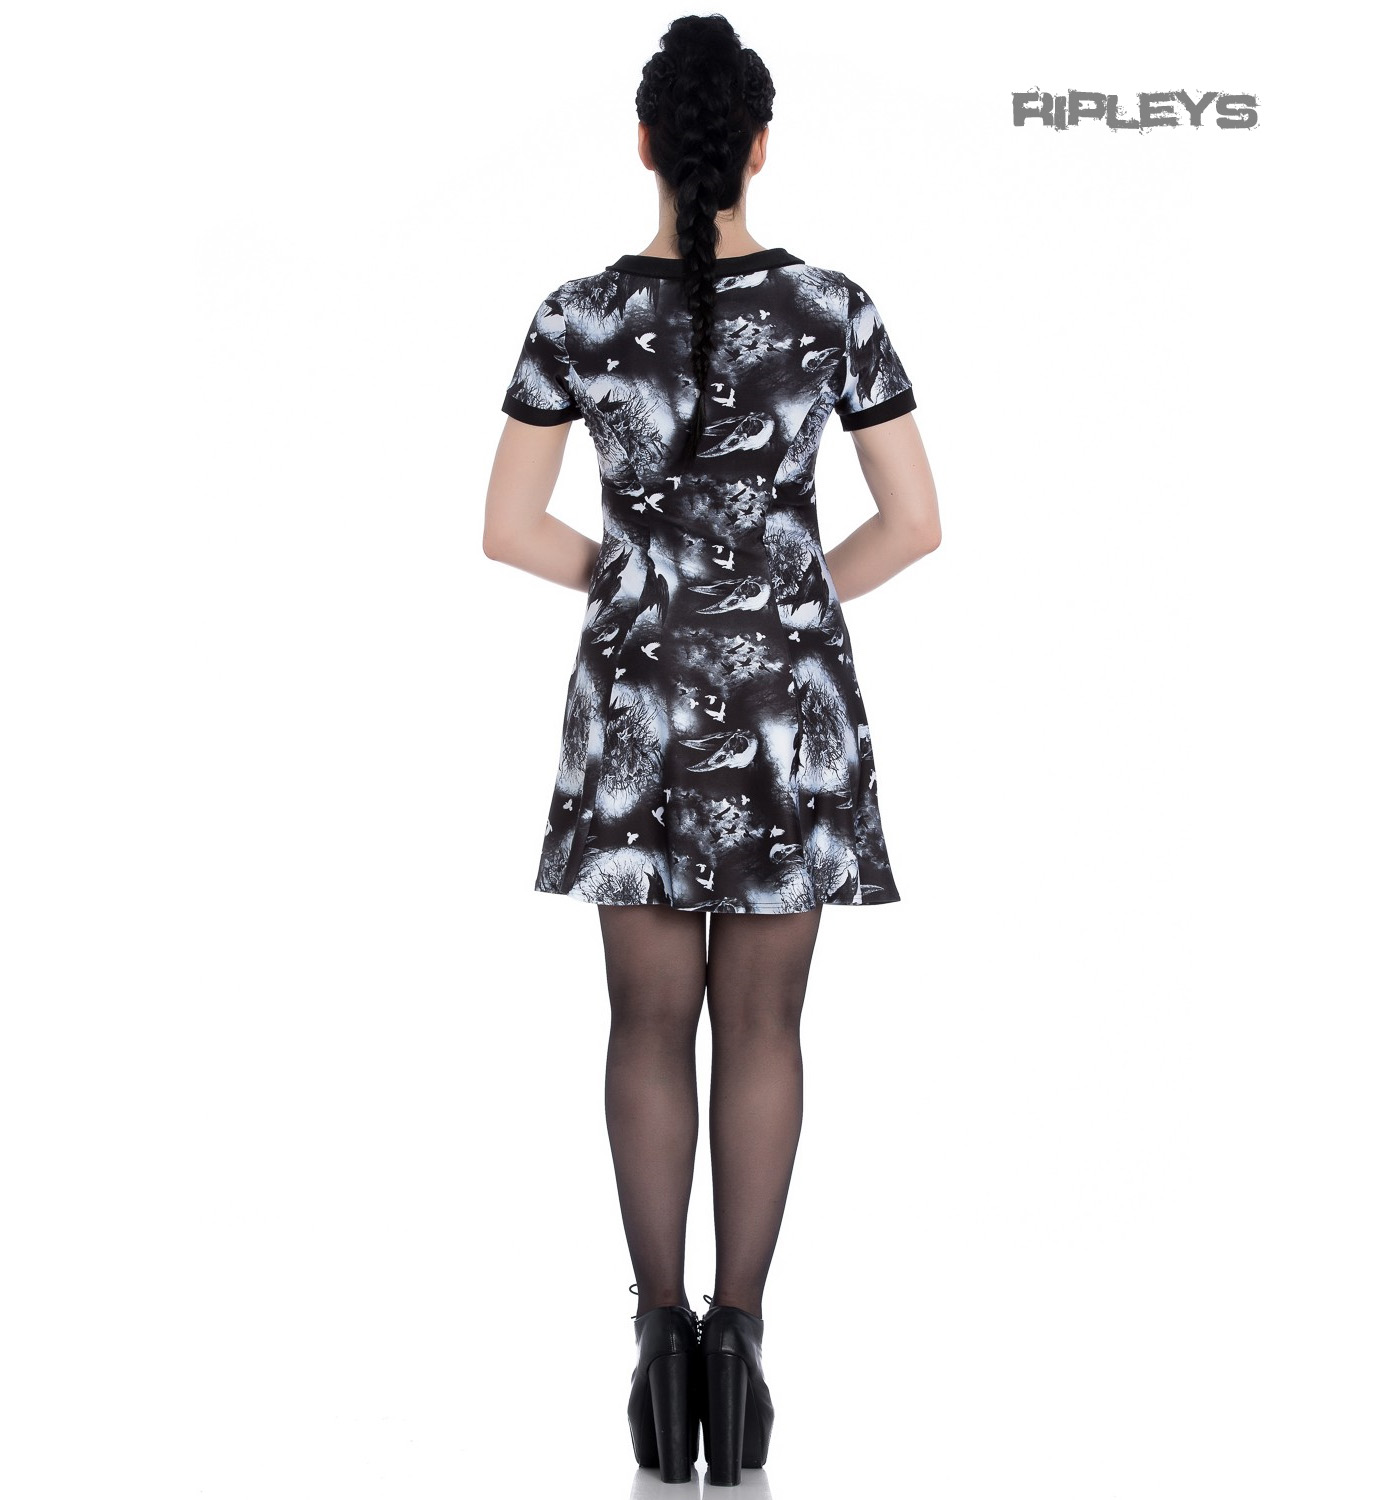 Hell-Bunny-Alternative-Goth-Punk-Black-Mini-Dress-CROWS-NEST-Witch-All-Sizes thumbnail 4